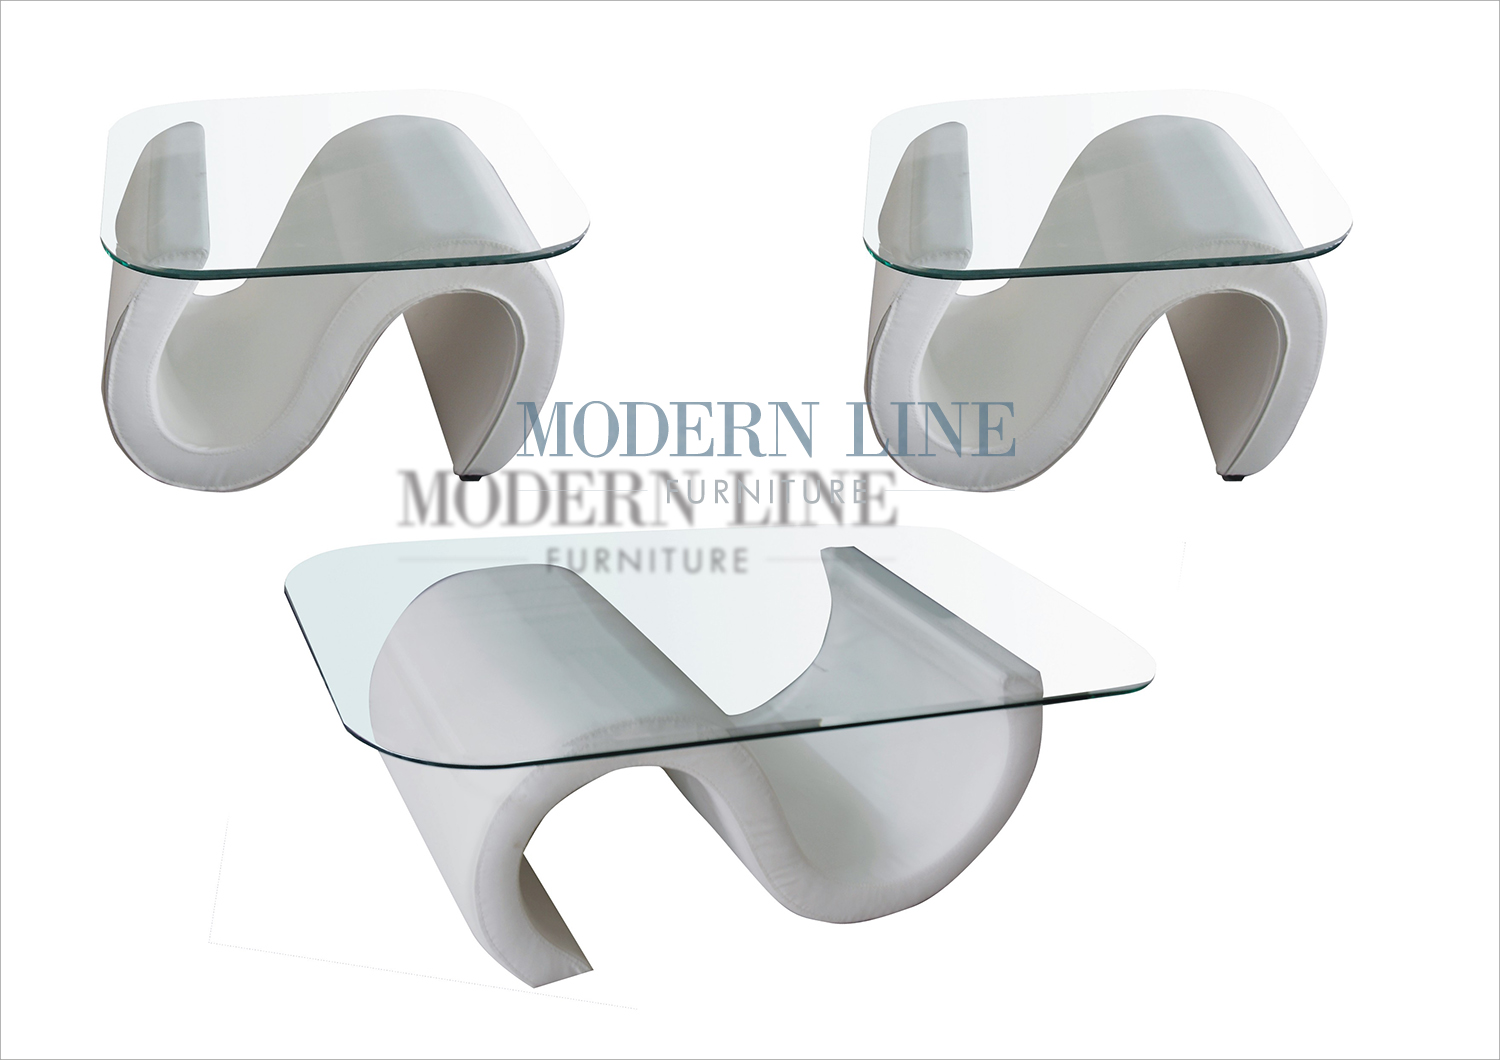 Modern line furniture commercial furniture custom made furniture seating collection coffee side tables model 69 ultra modern white leather